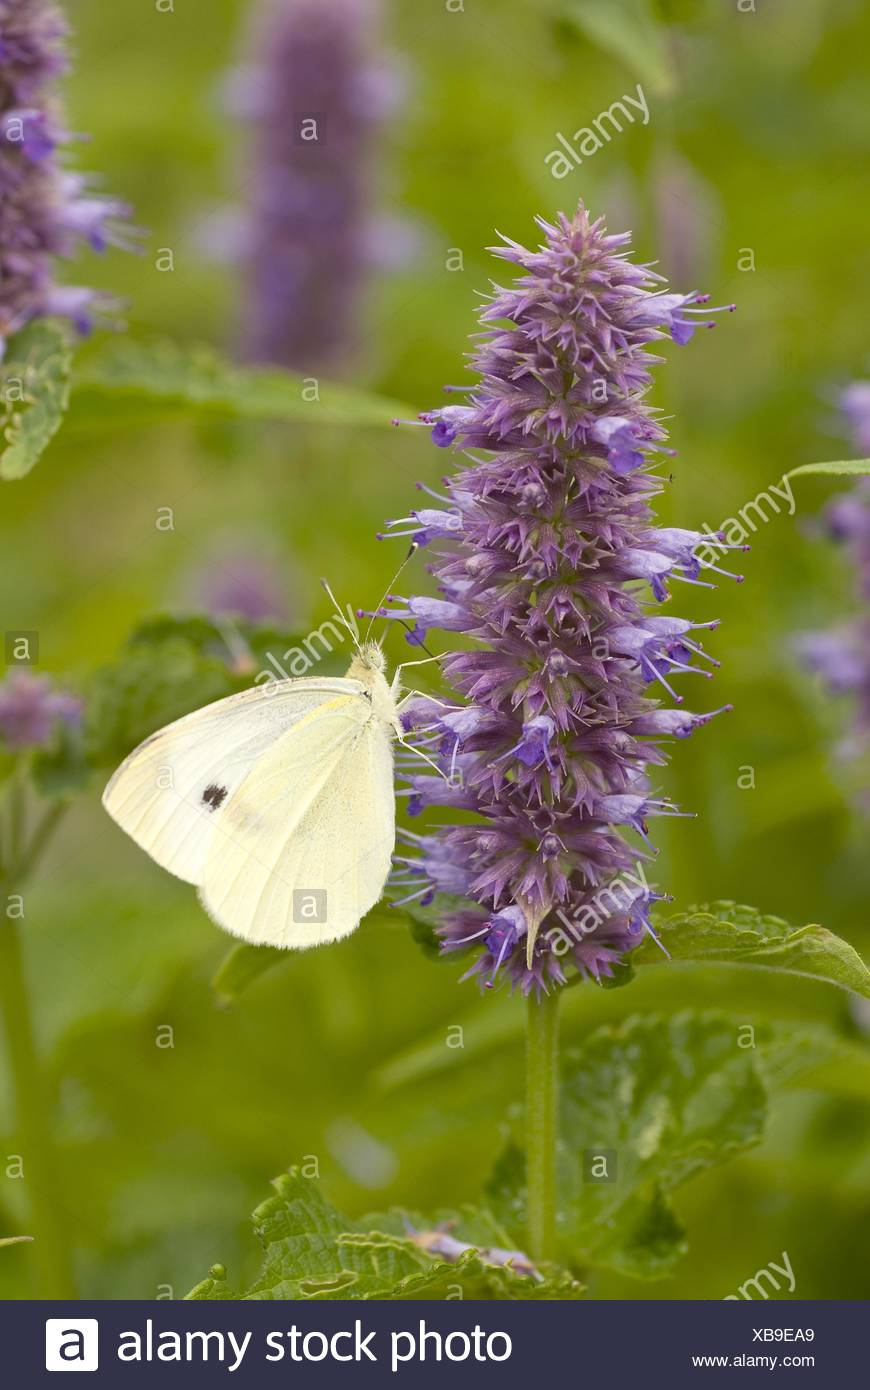 Anise hyssop, Blue giant hyssop (Agastache foeniculum, Agastache anethiodora, Agastache anisata, Stachys foeniculum), with Small white, Pieris rapae, Germany - Stock Image